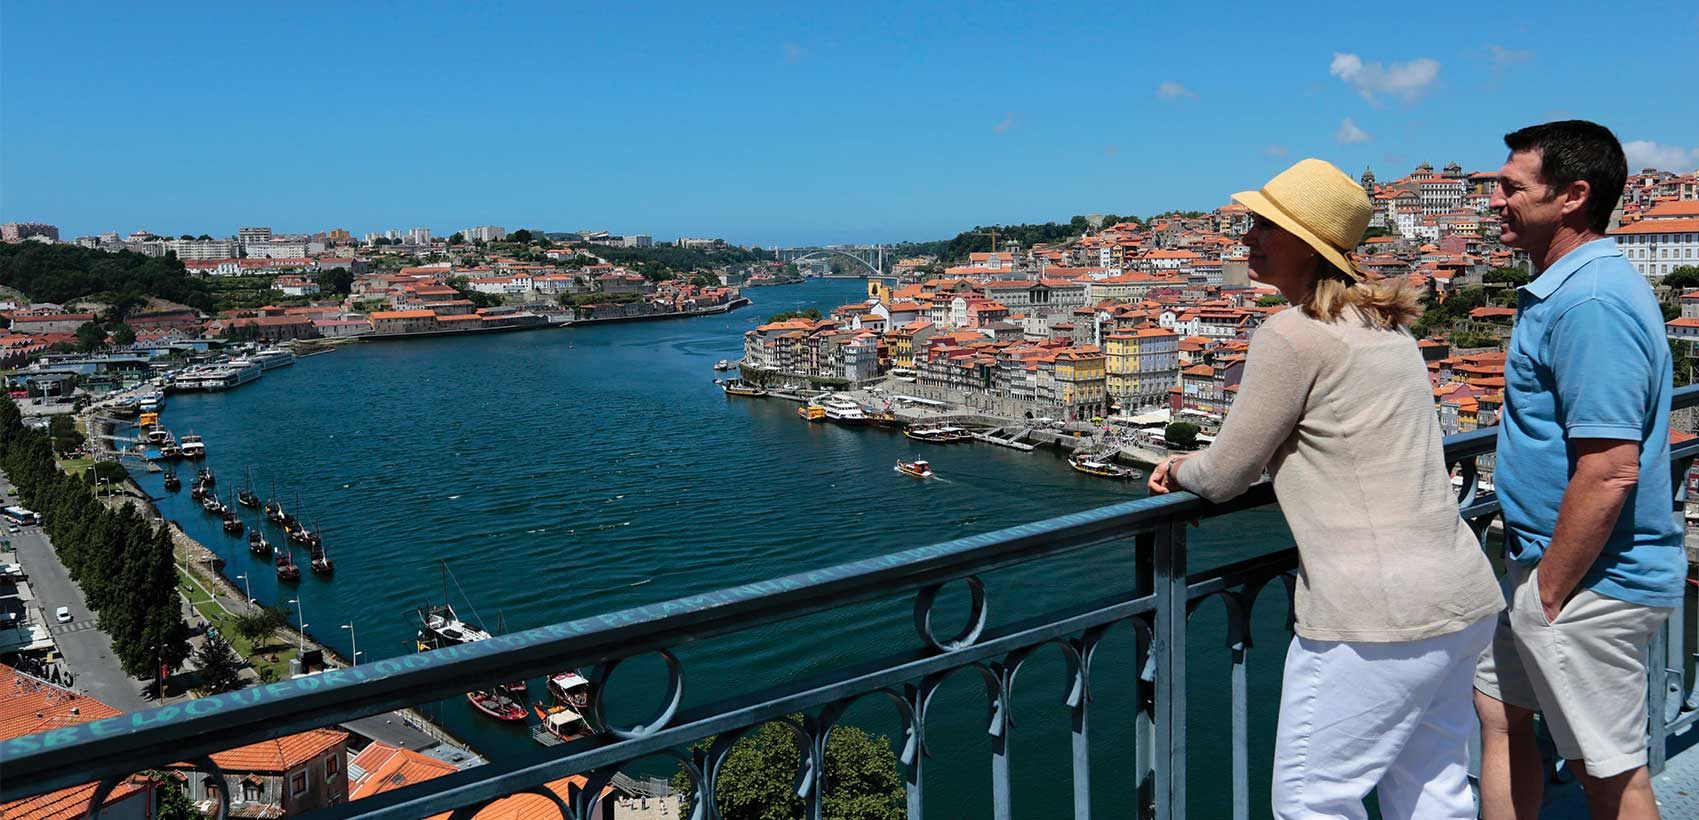 Save up to $2,000 Per Stateroom on Select Sailings with AmaWaterways! 5